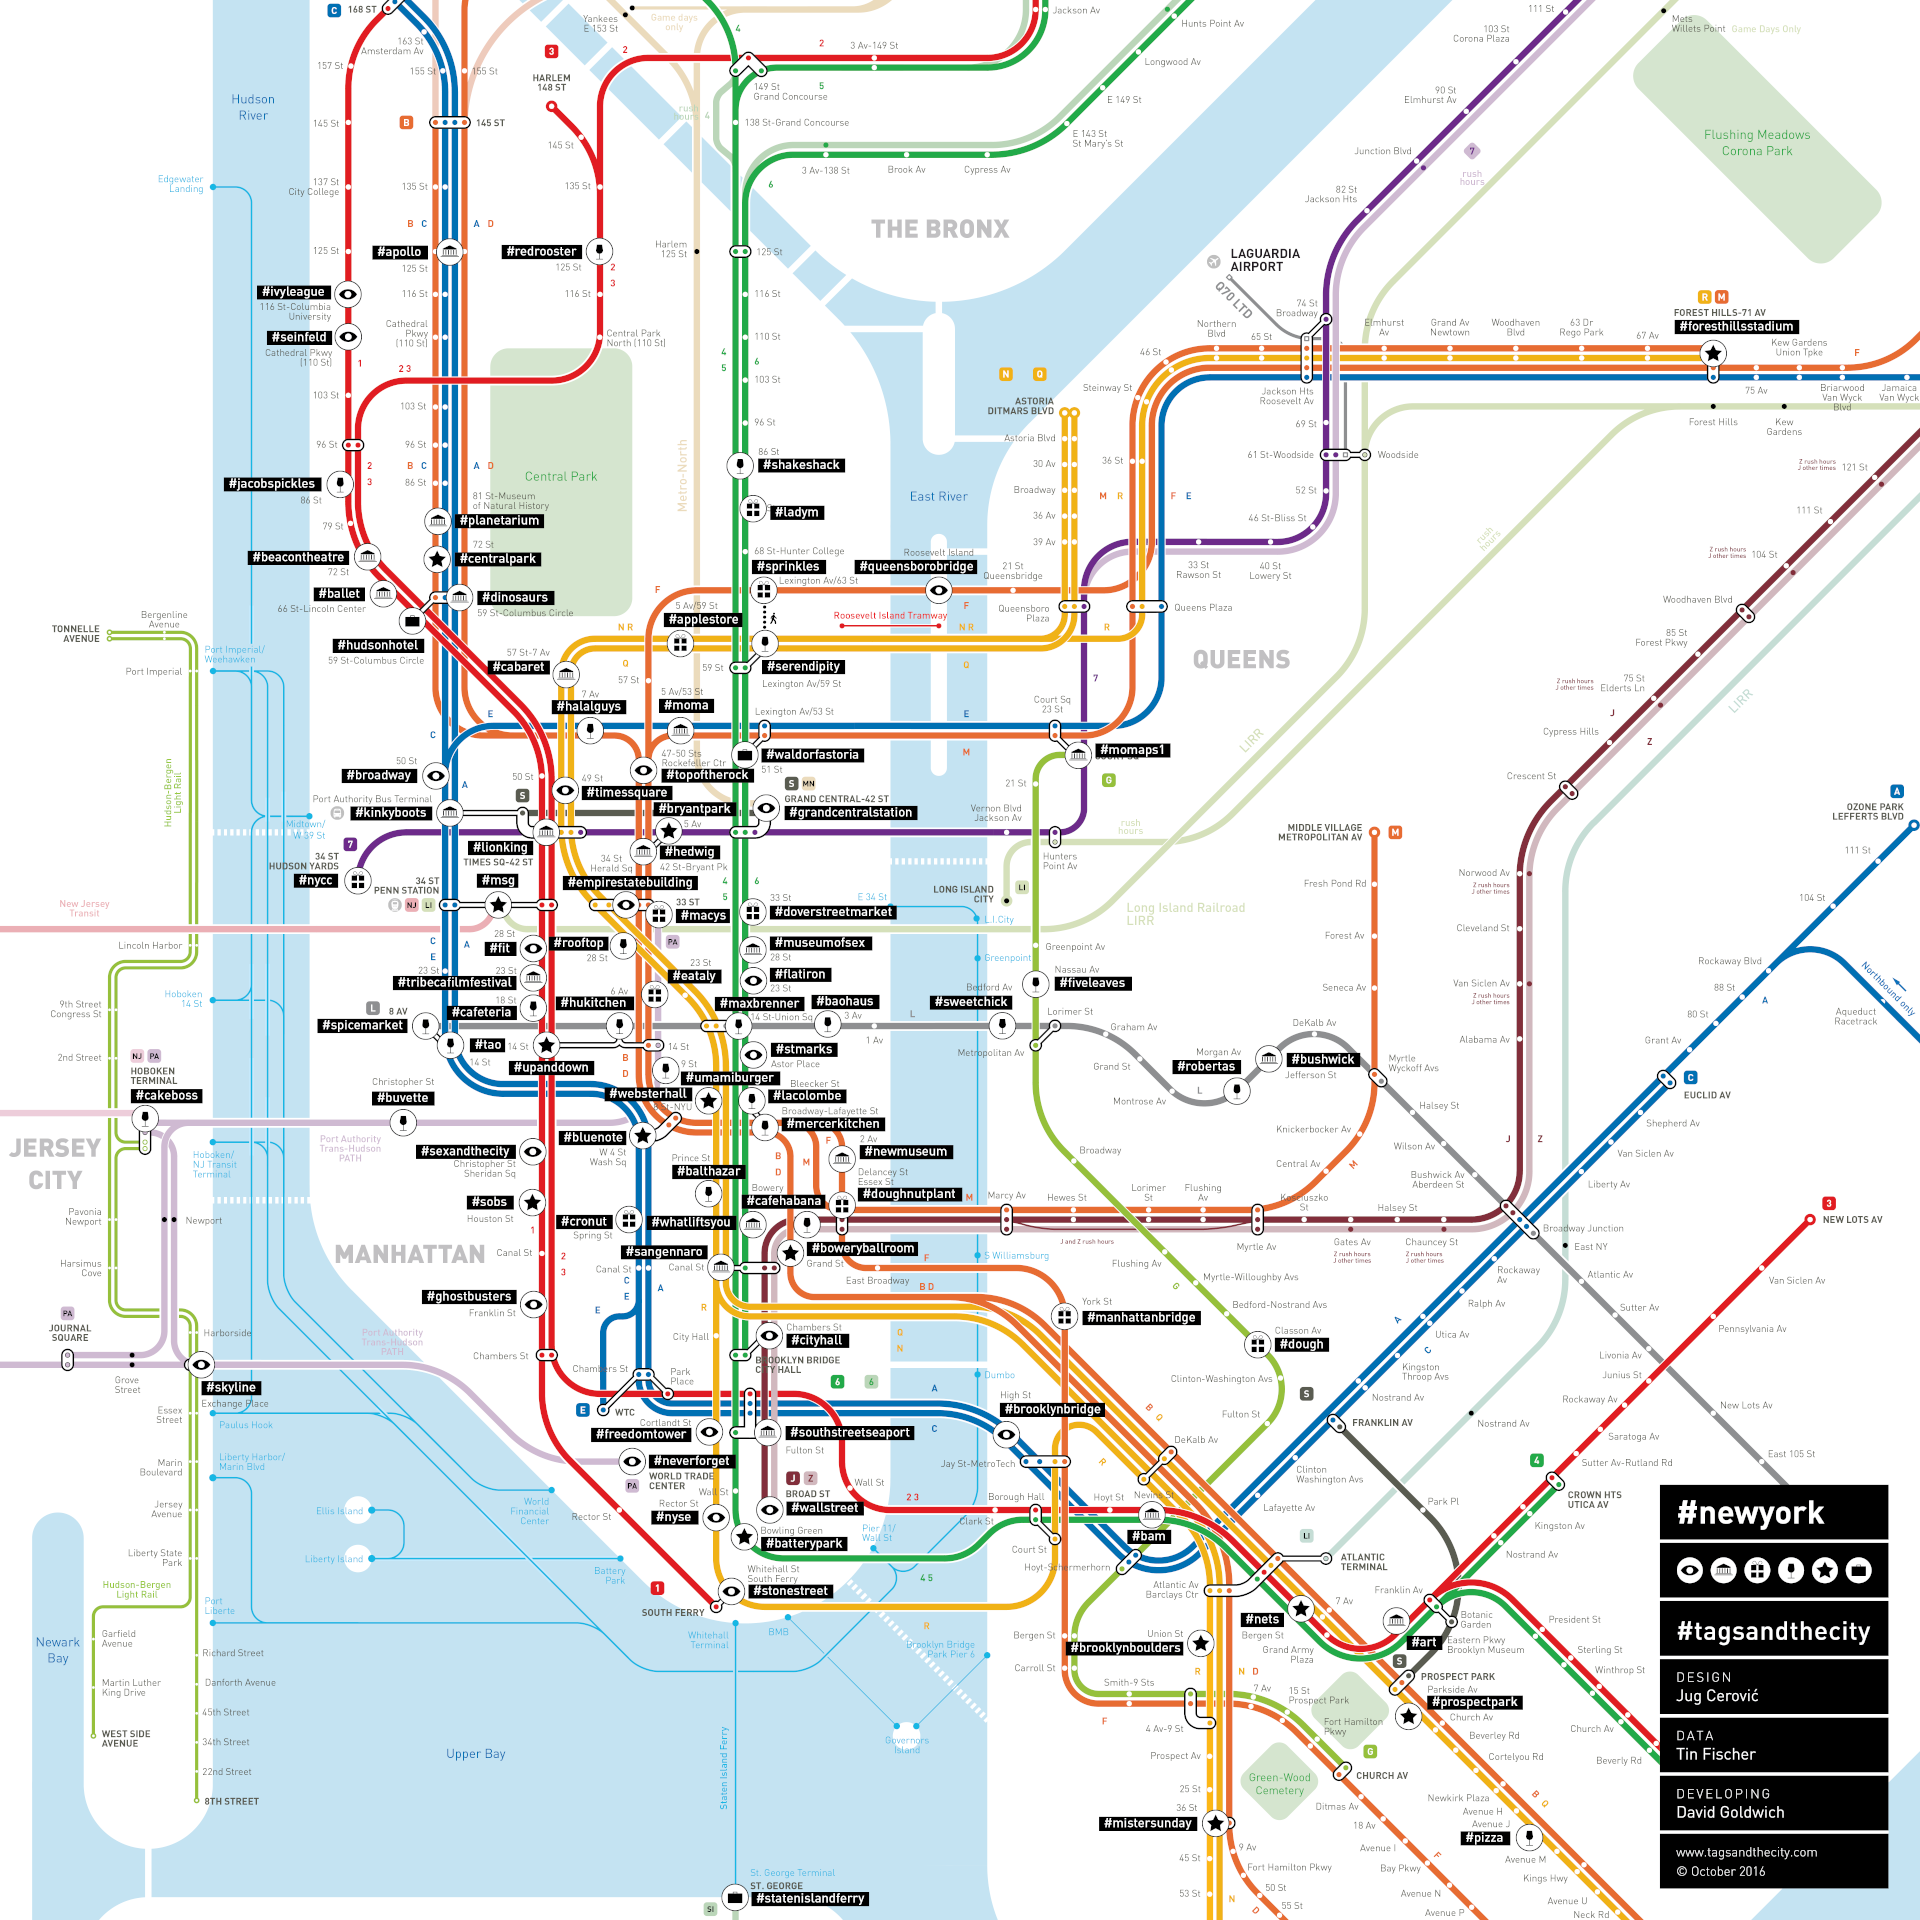 tourist nyc map with Ce87bed0b652ecaf9ba41bf081188aab on Irving Subway Map 2 together with Orlando Golf Courses Map moreover Ce87bed0b652ecaf9ba41bf081188aab also New York Map Yankee Stadium also Map Portovenere 19025 La Spezia Italy.